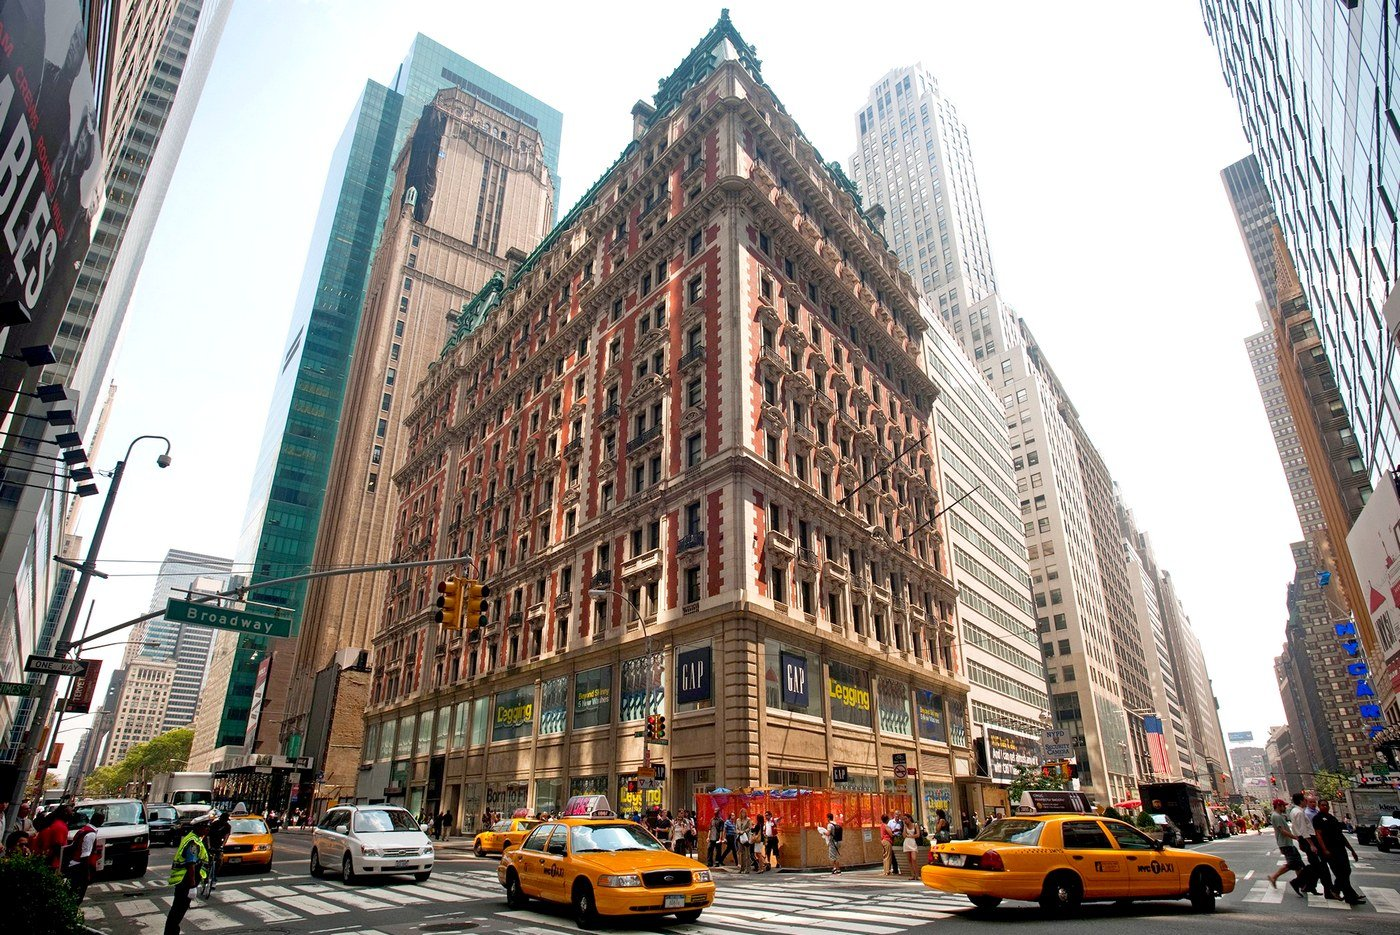 New York Hotel Hotels Specifications And Price